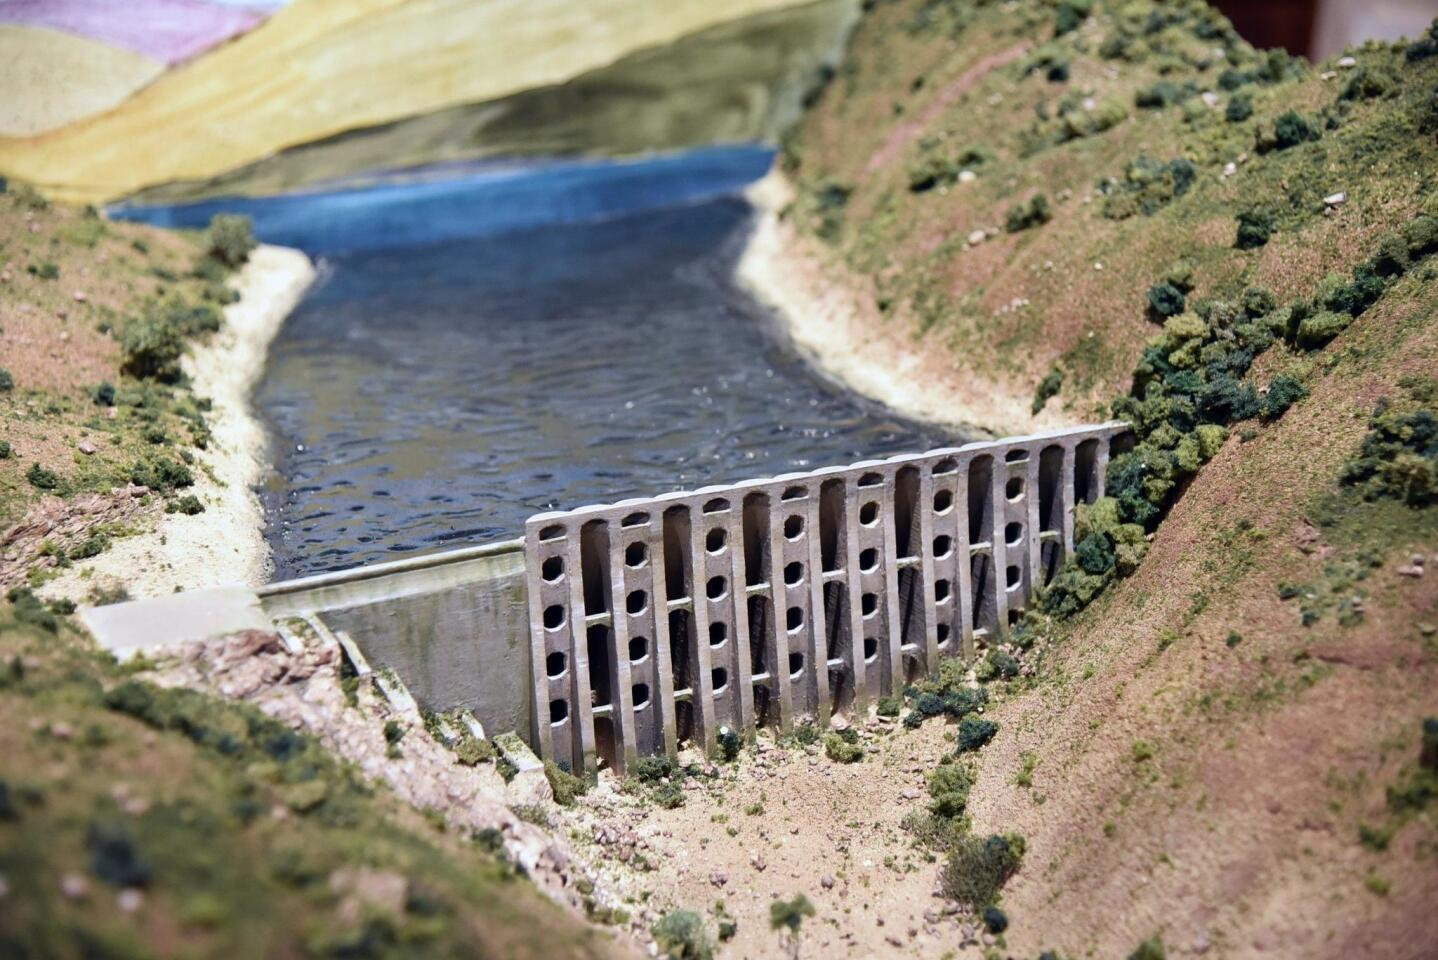 RSF Historical Society Annual Meeting and diorama unveiling of the Lake Hodges Dam